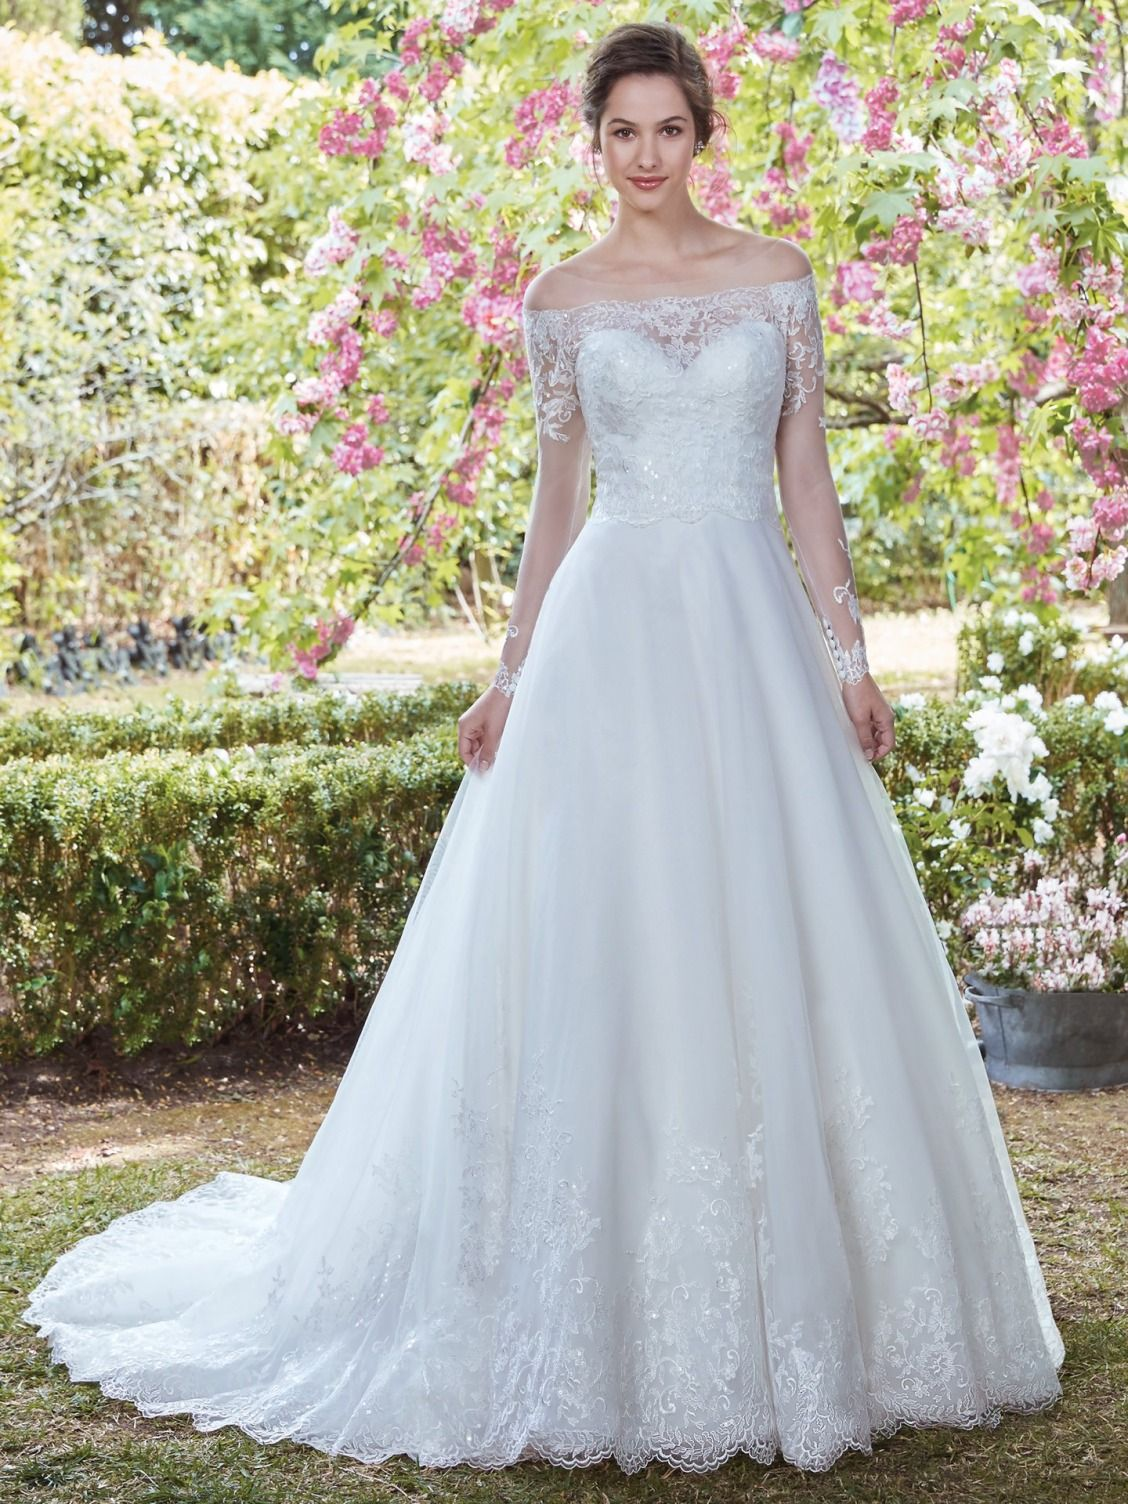 Maggie Sottero Wedding Dresses | Ballgown wedding dress, Wedding ...